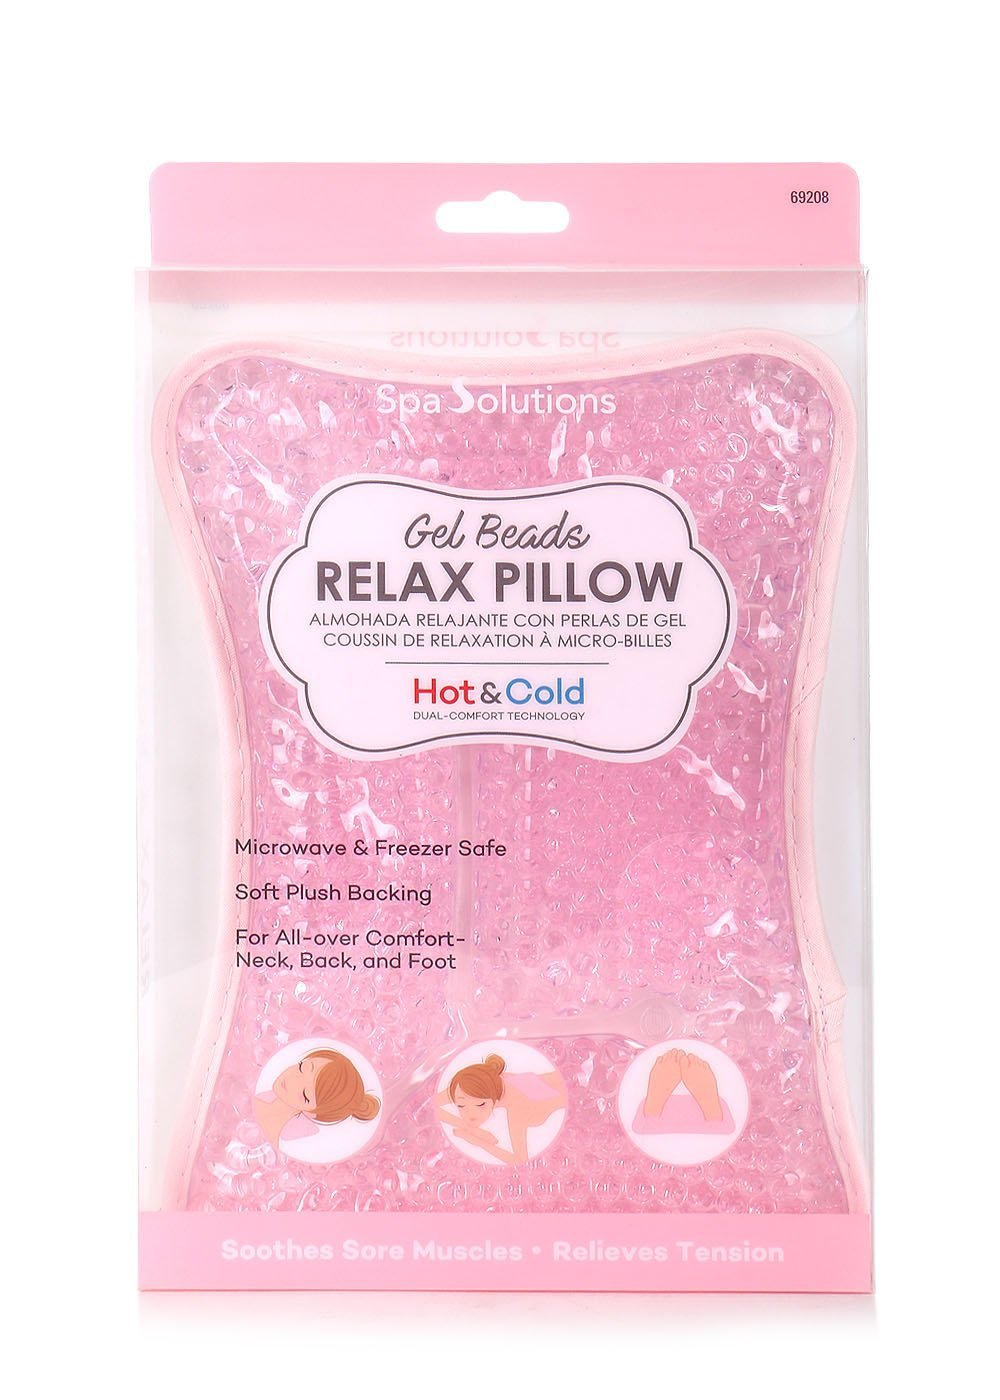 SPA SOLUTIONS GEL BEADS RELAX PILLOW PINK Cala